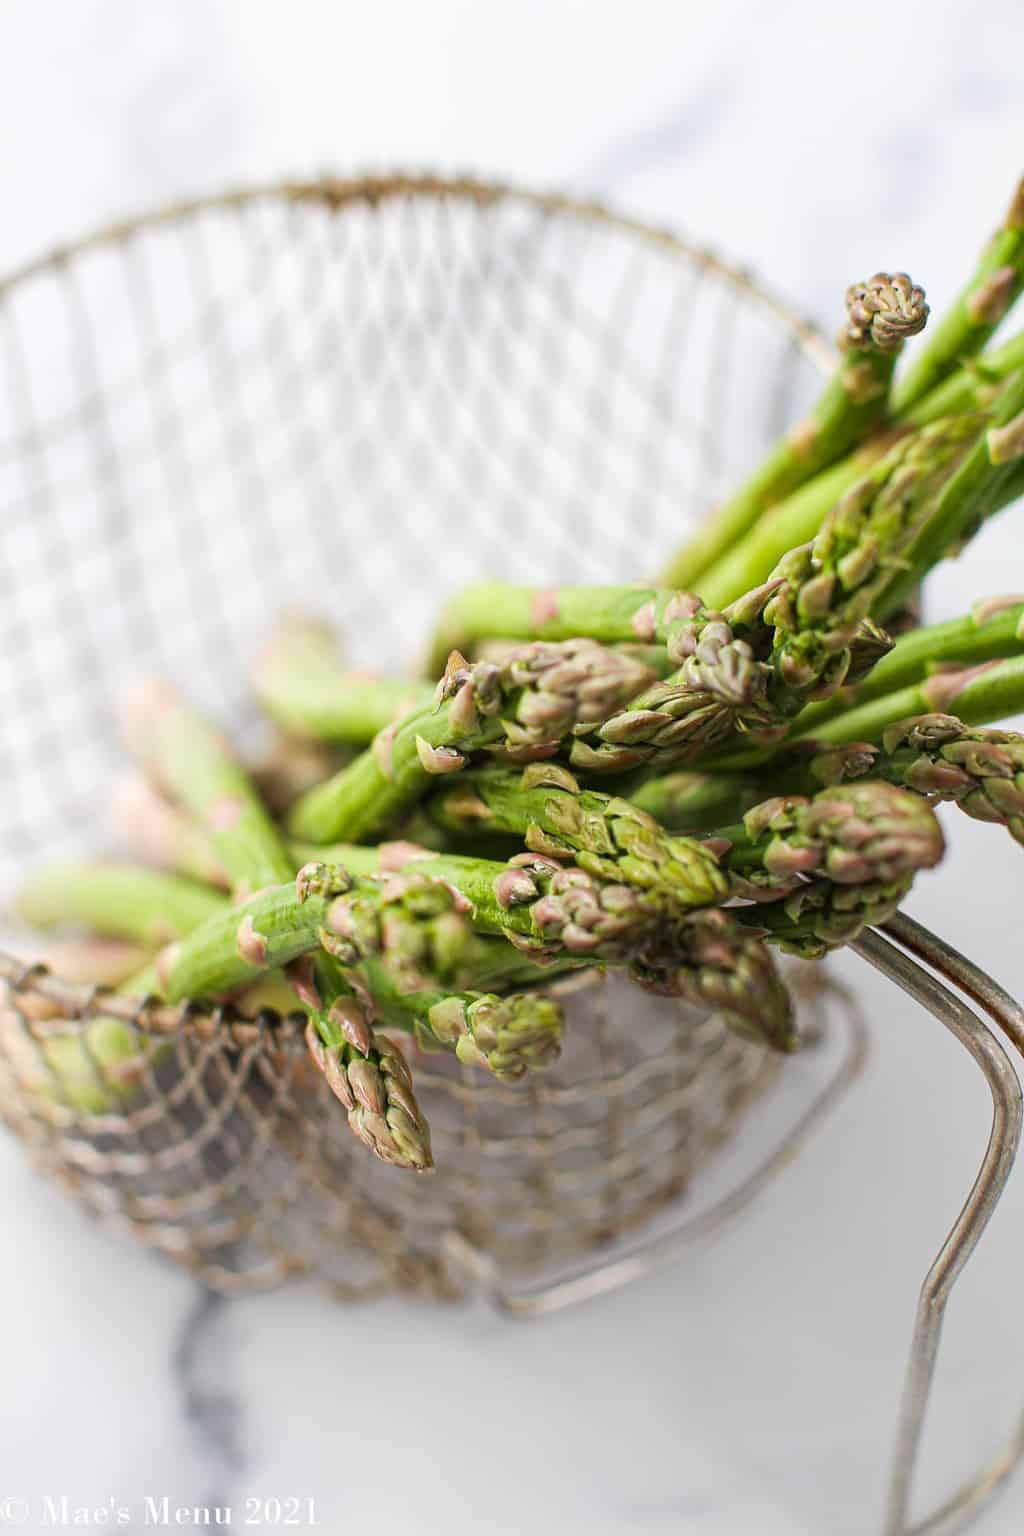 Angled overhead shot of a strainer full of asparagus spears